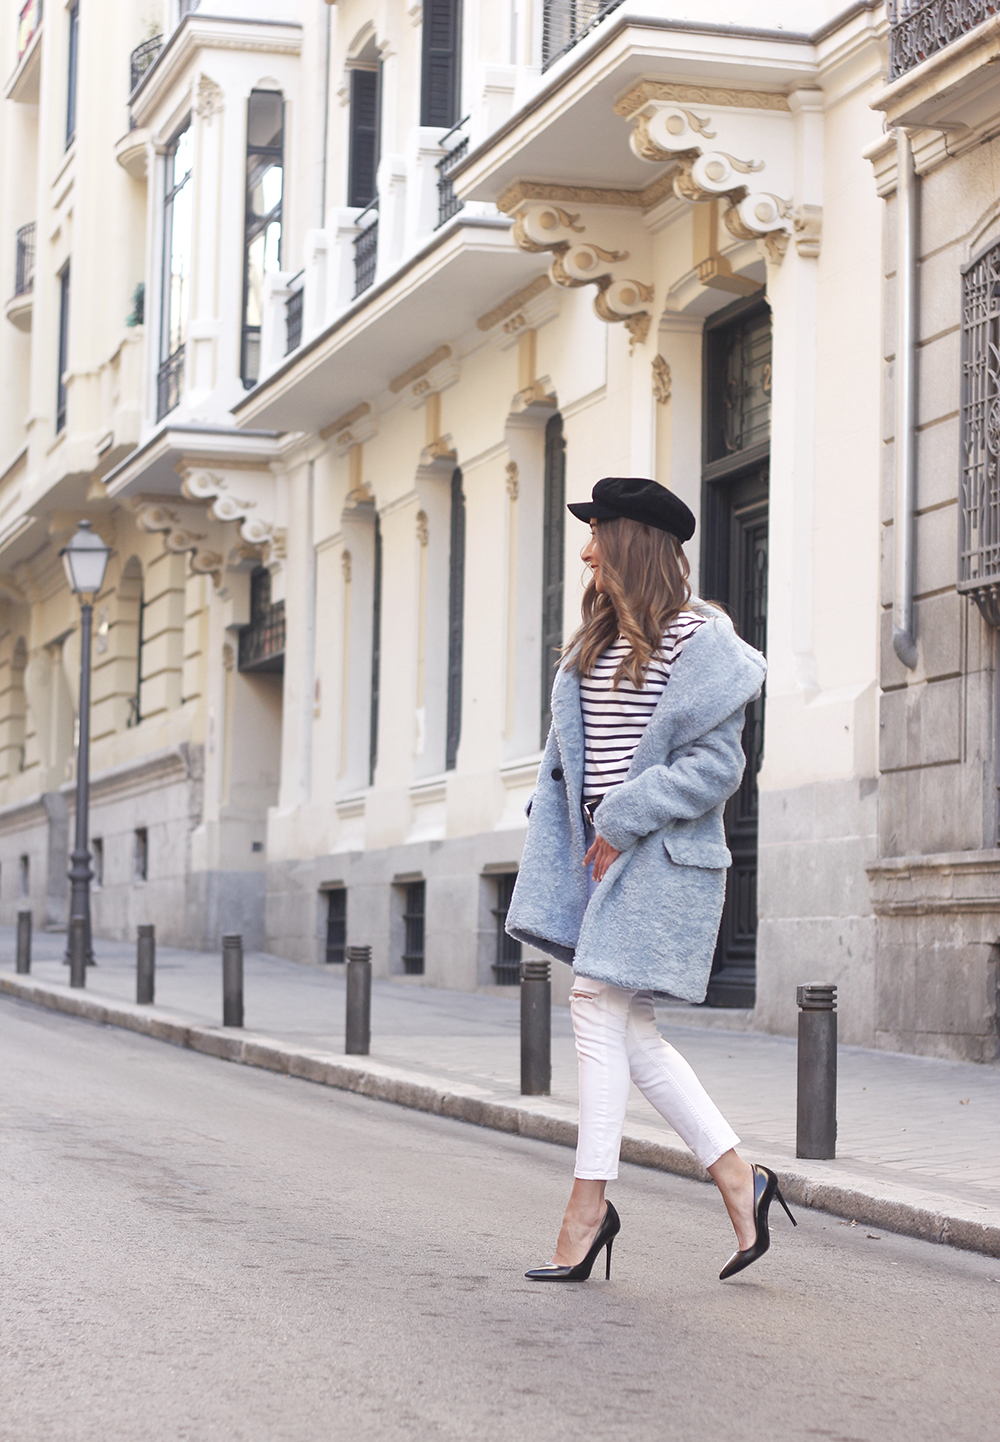 blue fur coat stripes white ripped jeans givenchy bag navy cap fall outfit street style02